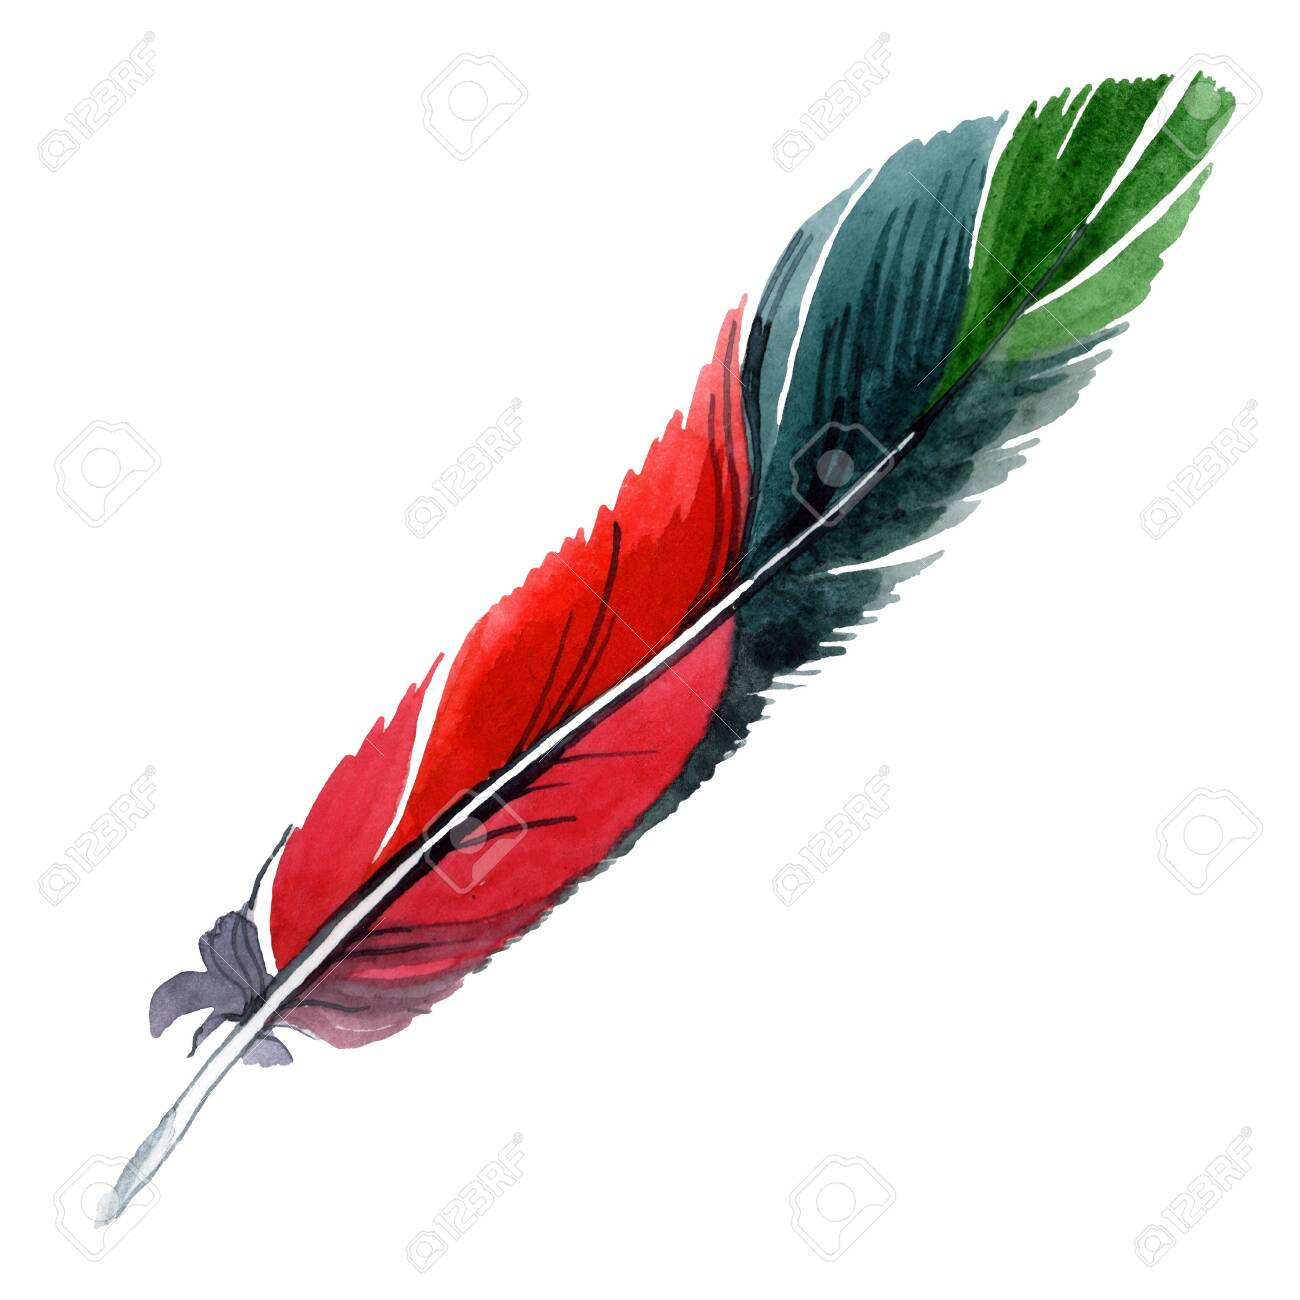 Colorful bird feather from wing isolated. background illustration set. Watercolour drawing fashion aquarelle isolated. Isolated feather illustration element. - 131358243